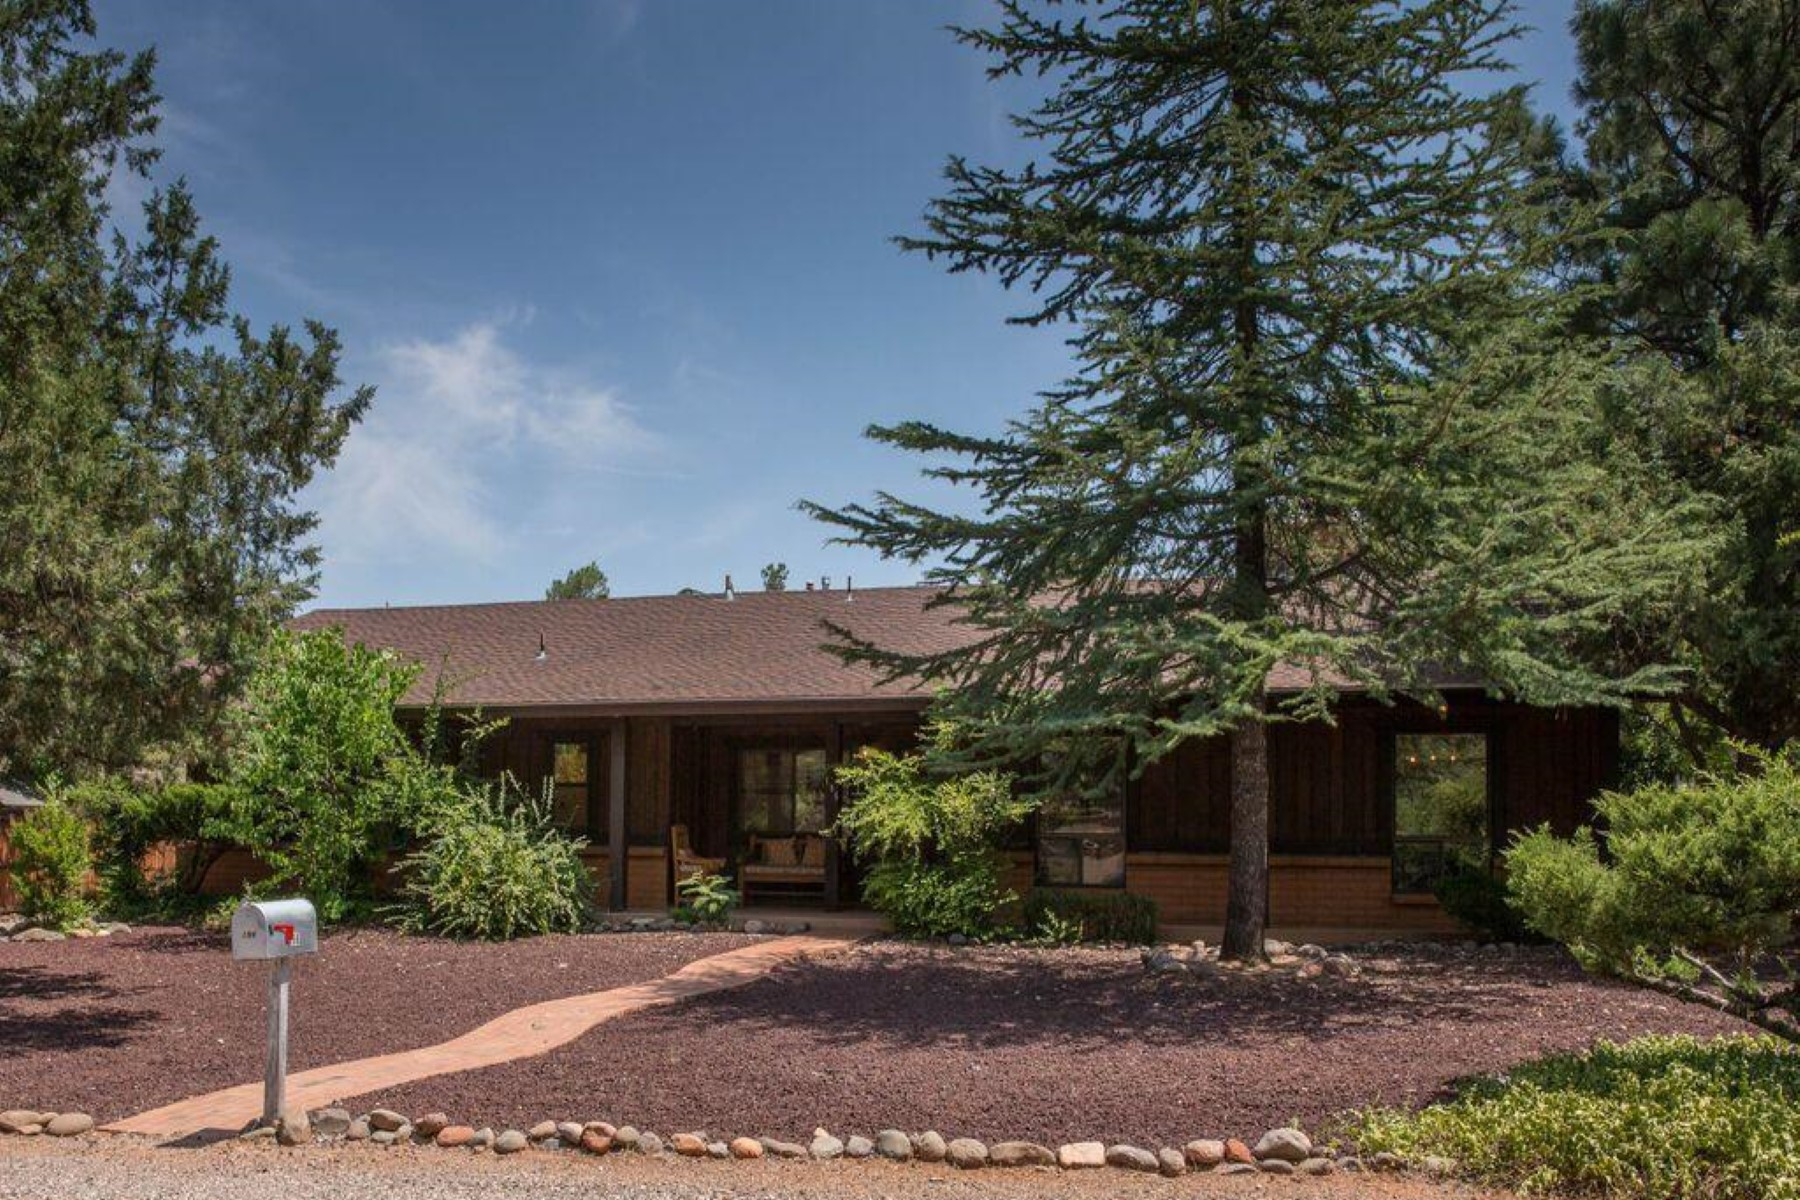 단독 가정 주택 용 매매 에 Perfect single level home in Flagstaff 196 Doodlebug RD Sedona, 아리조나, 86336 미국